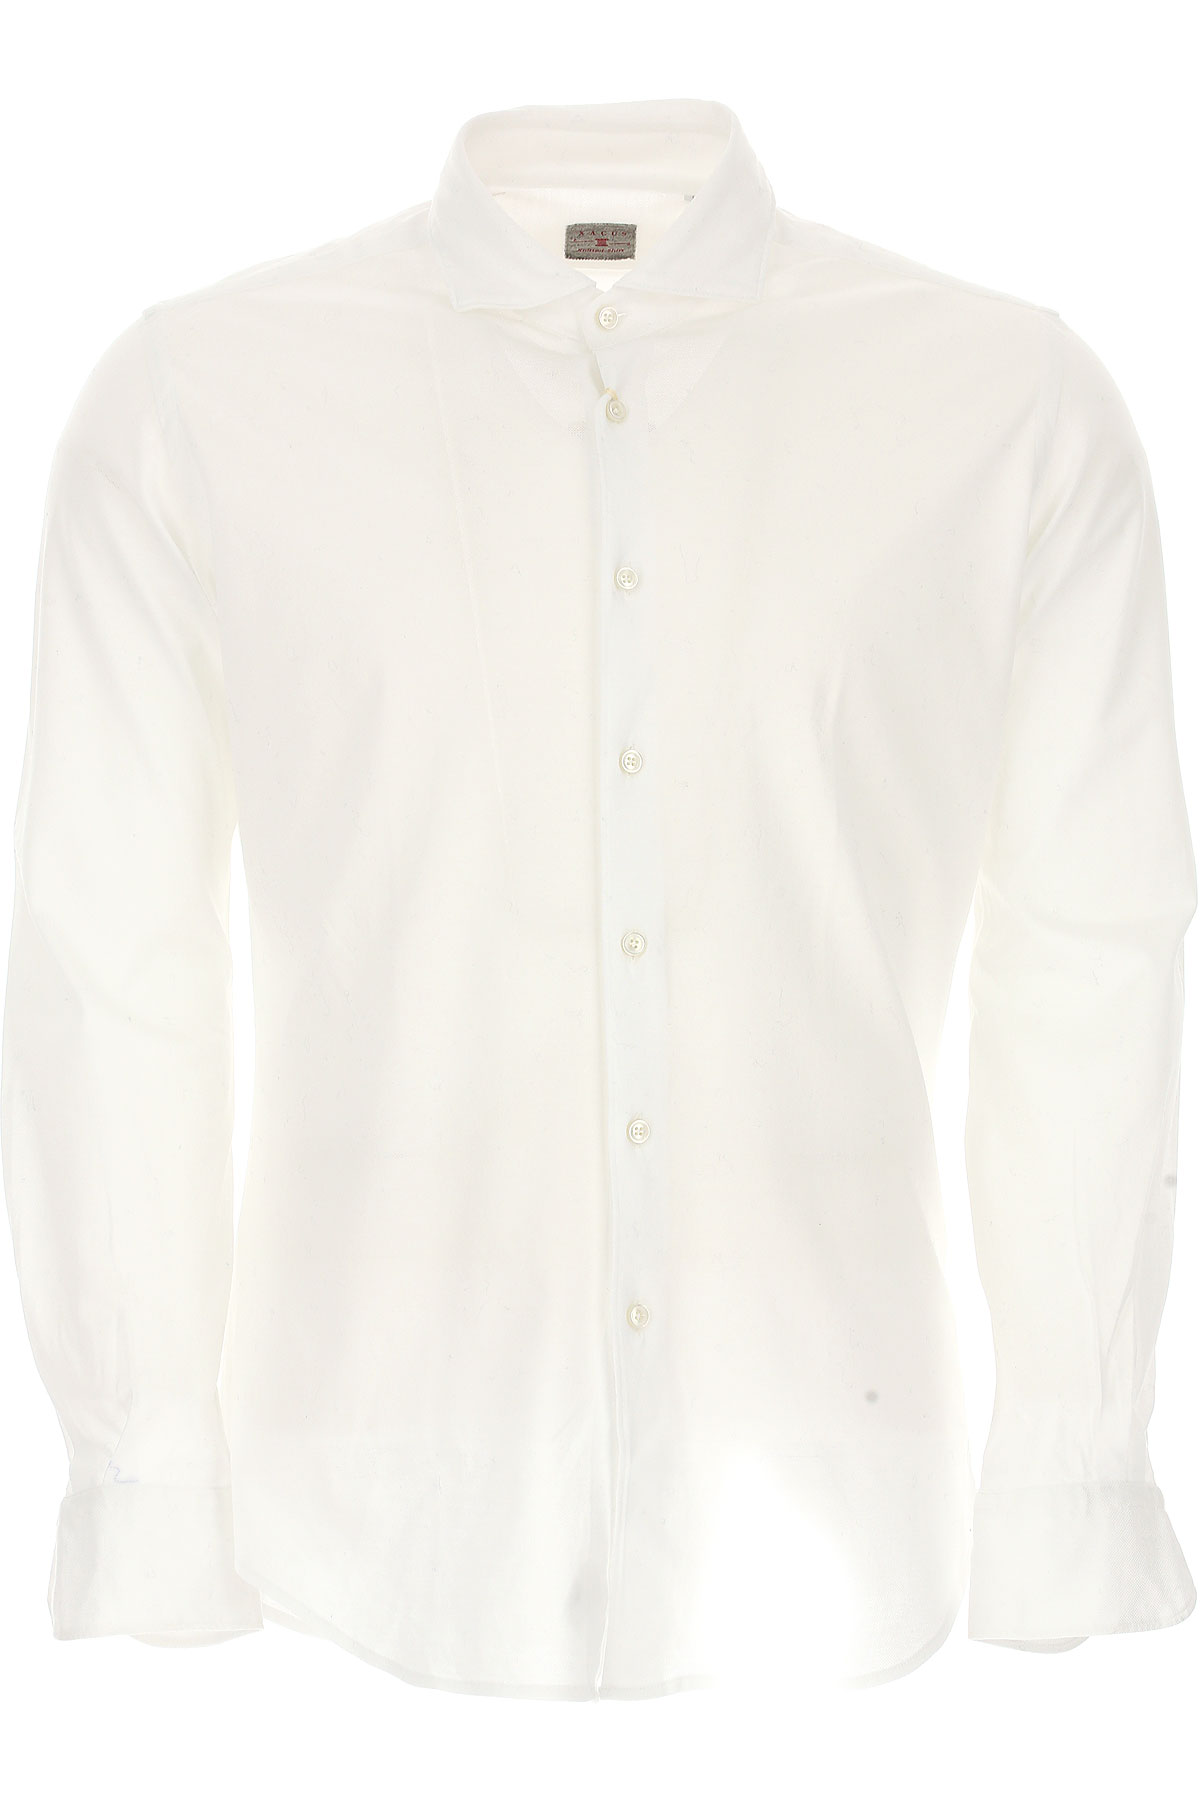 Image of Xacus Shirt for Men On Sale, White, Cotton, 2017, 16.5 17 17.5